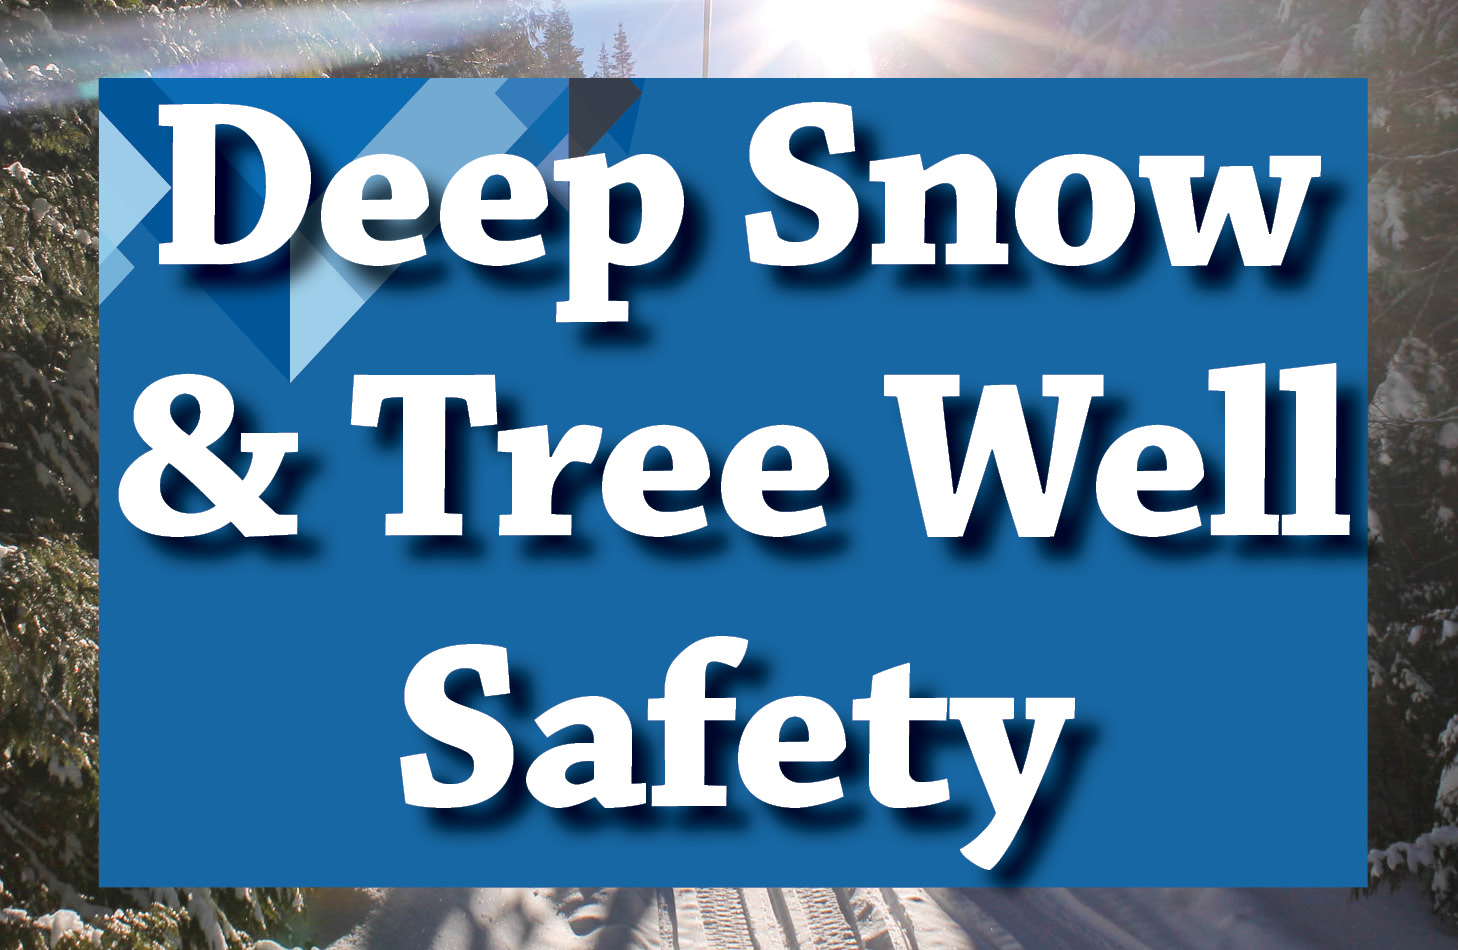 Deep snow and tree well safety information